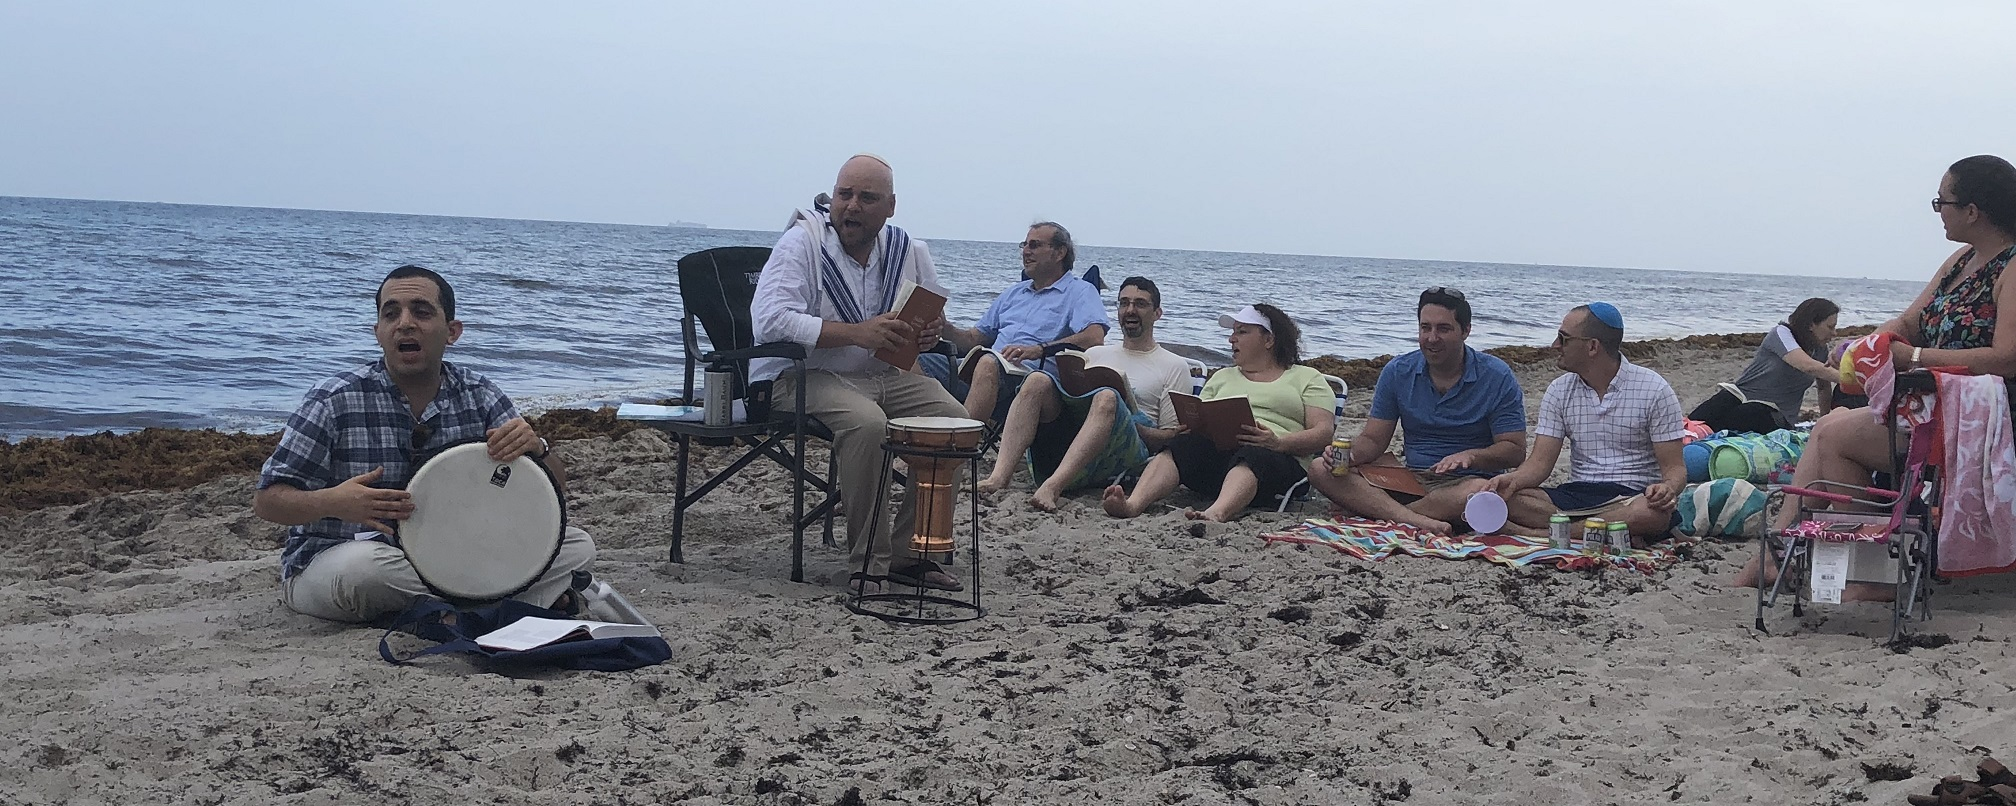 "<a href=""https://www.shaareikodesh.org/calendar""